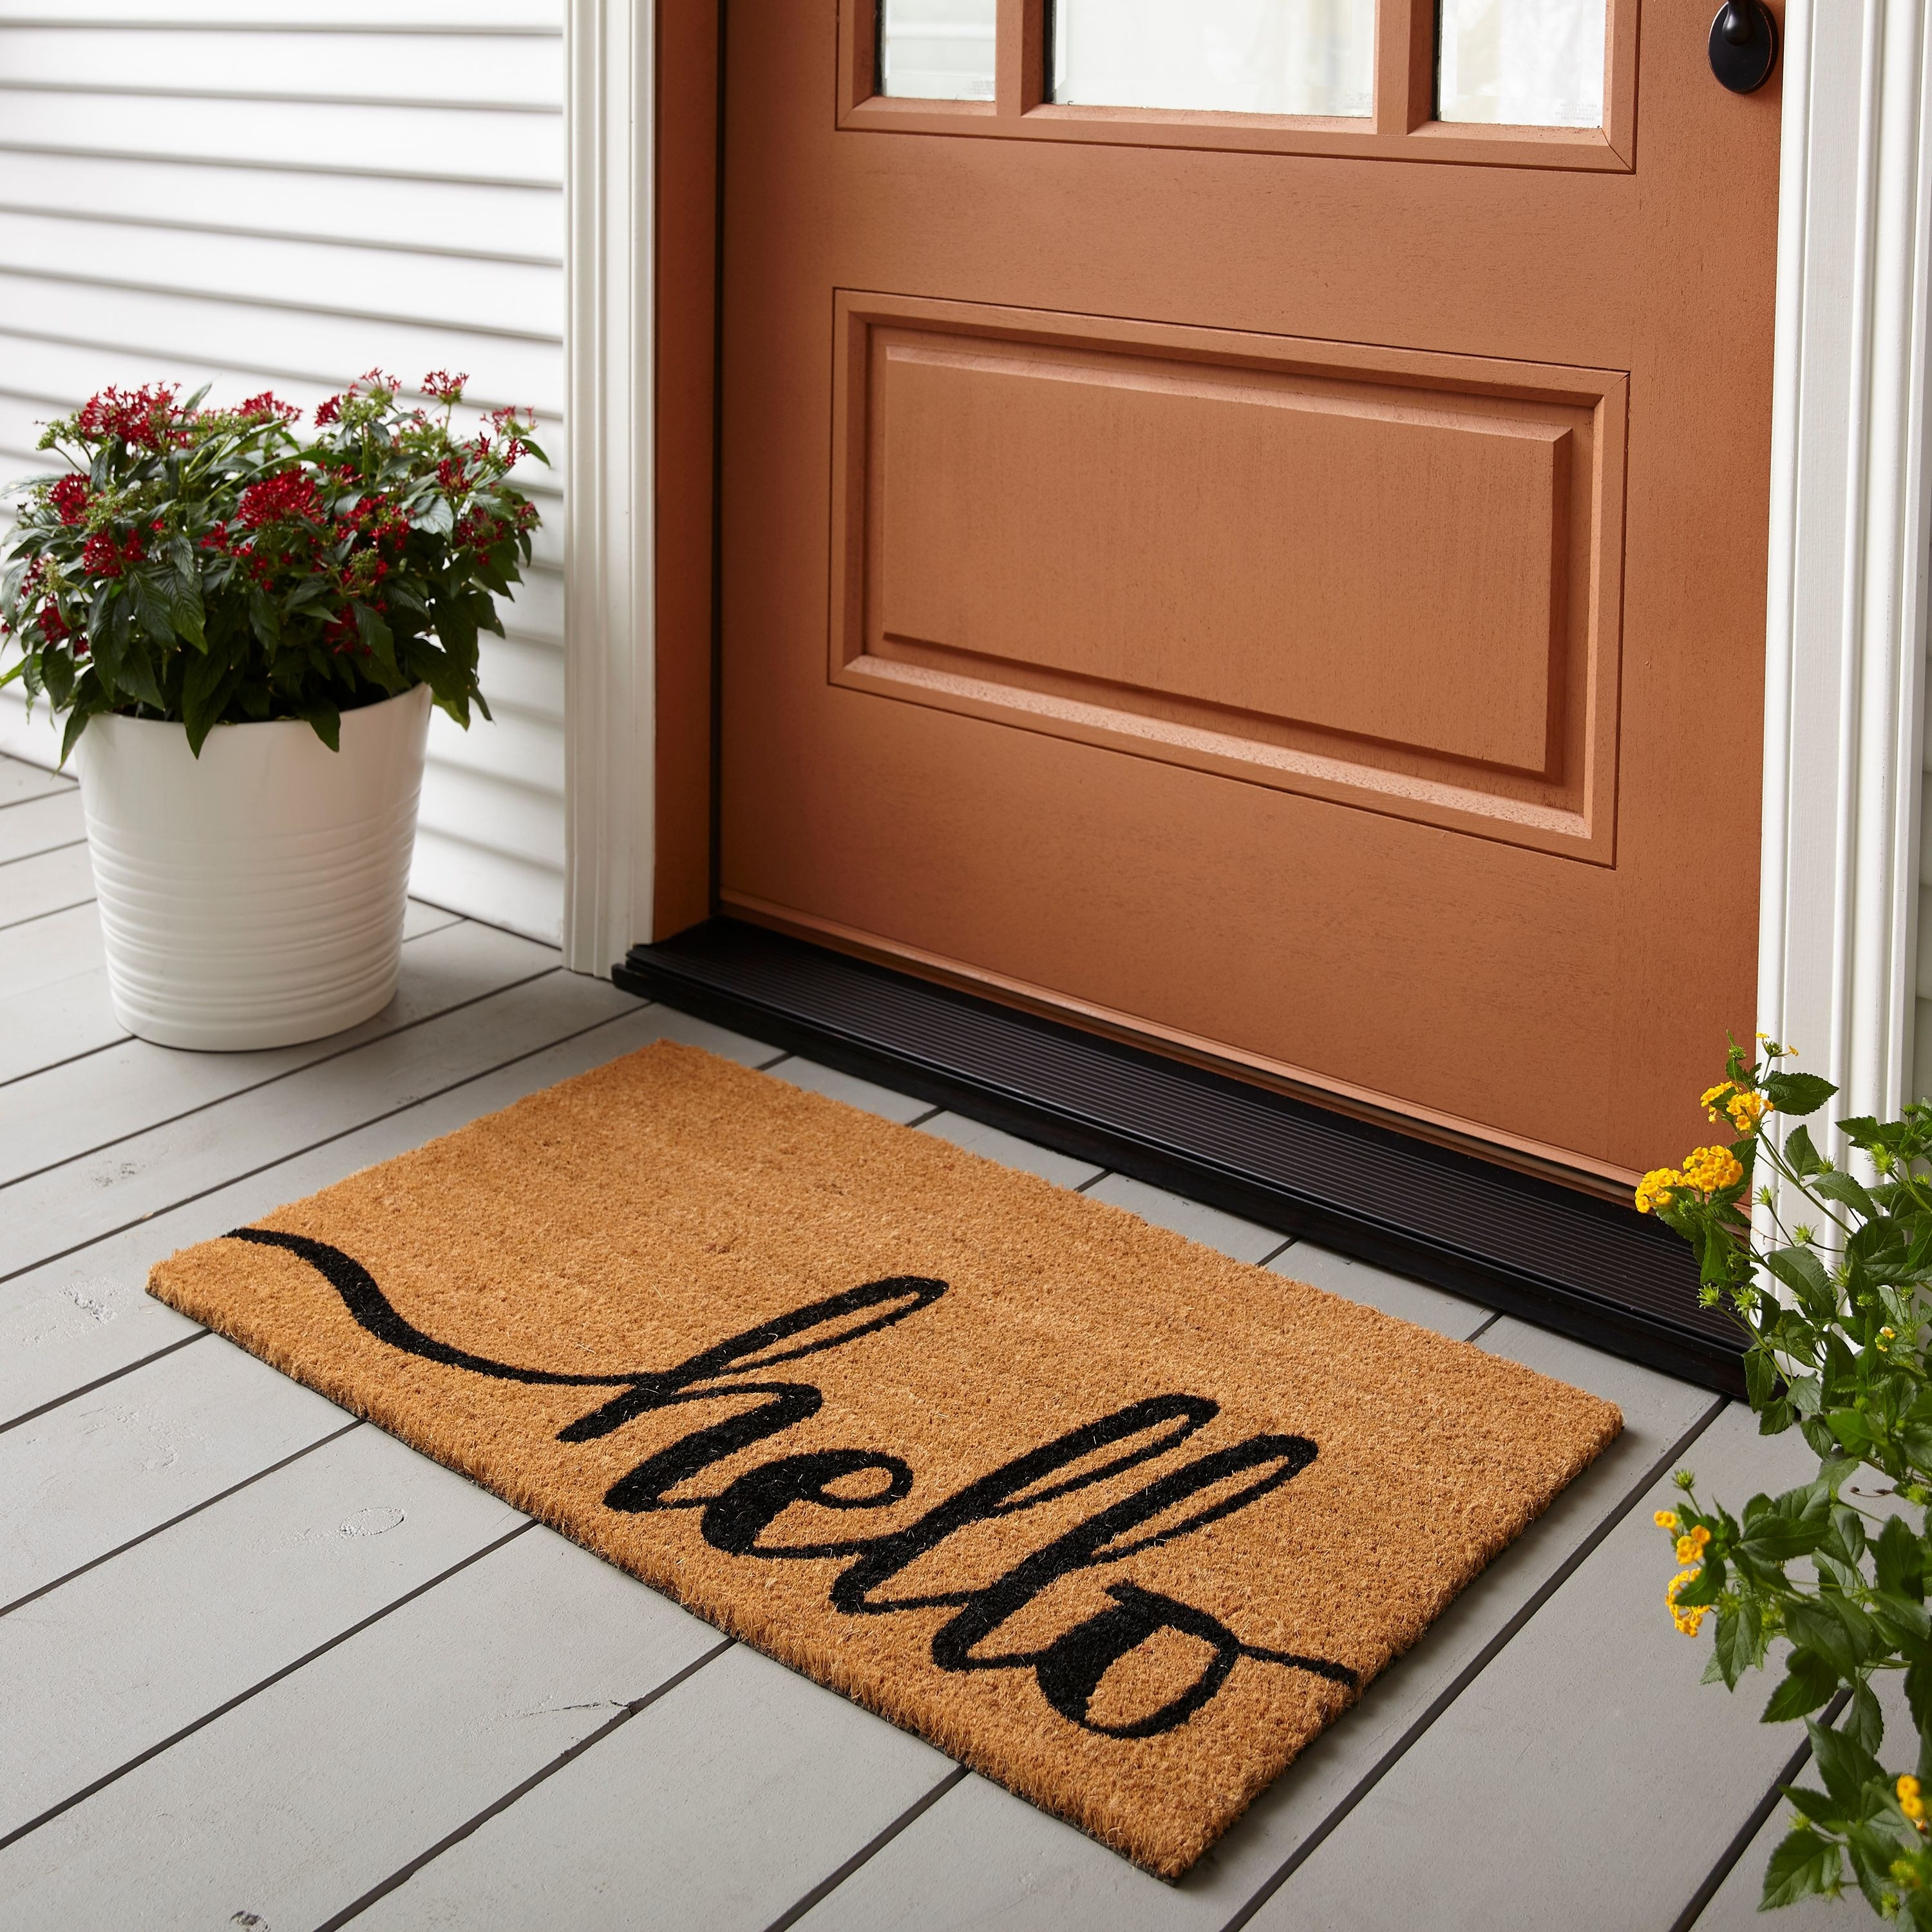 """A home with a """"Hello"""" doormat outside"""